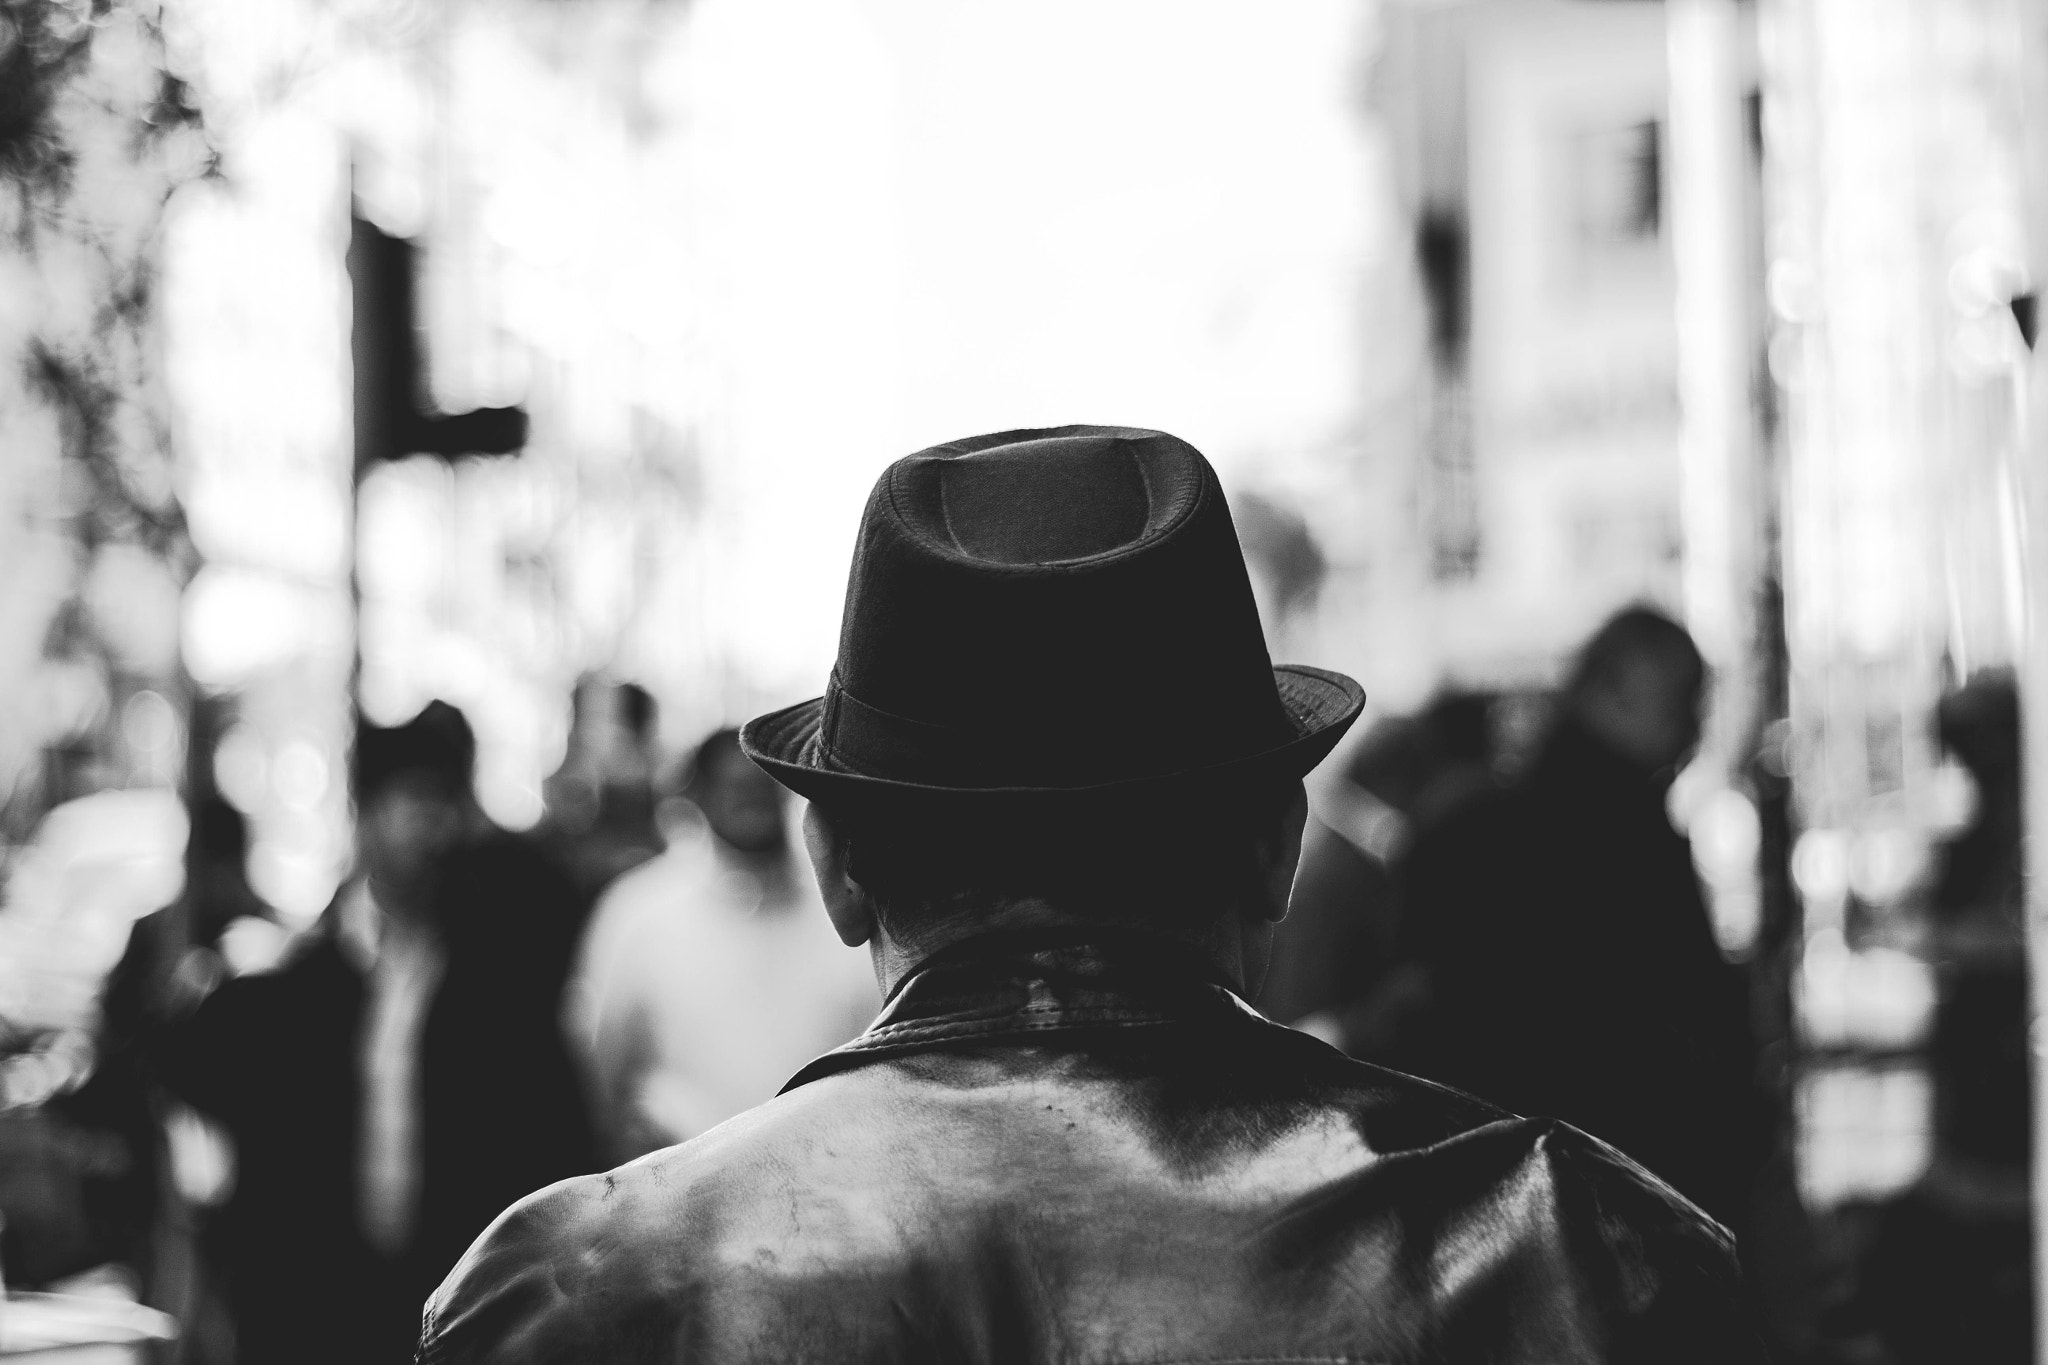 Photograph nice hat by AMJAD AGGAG on 500px